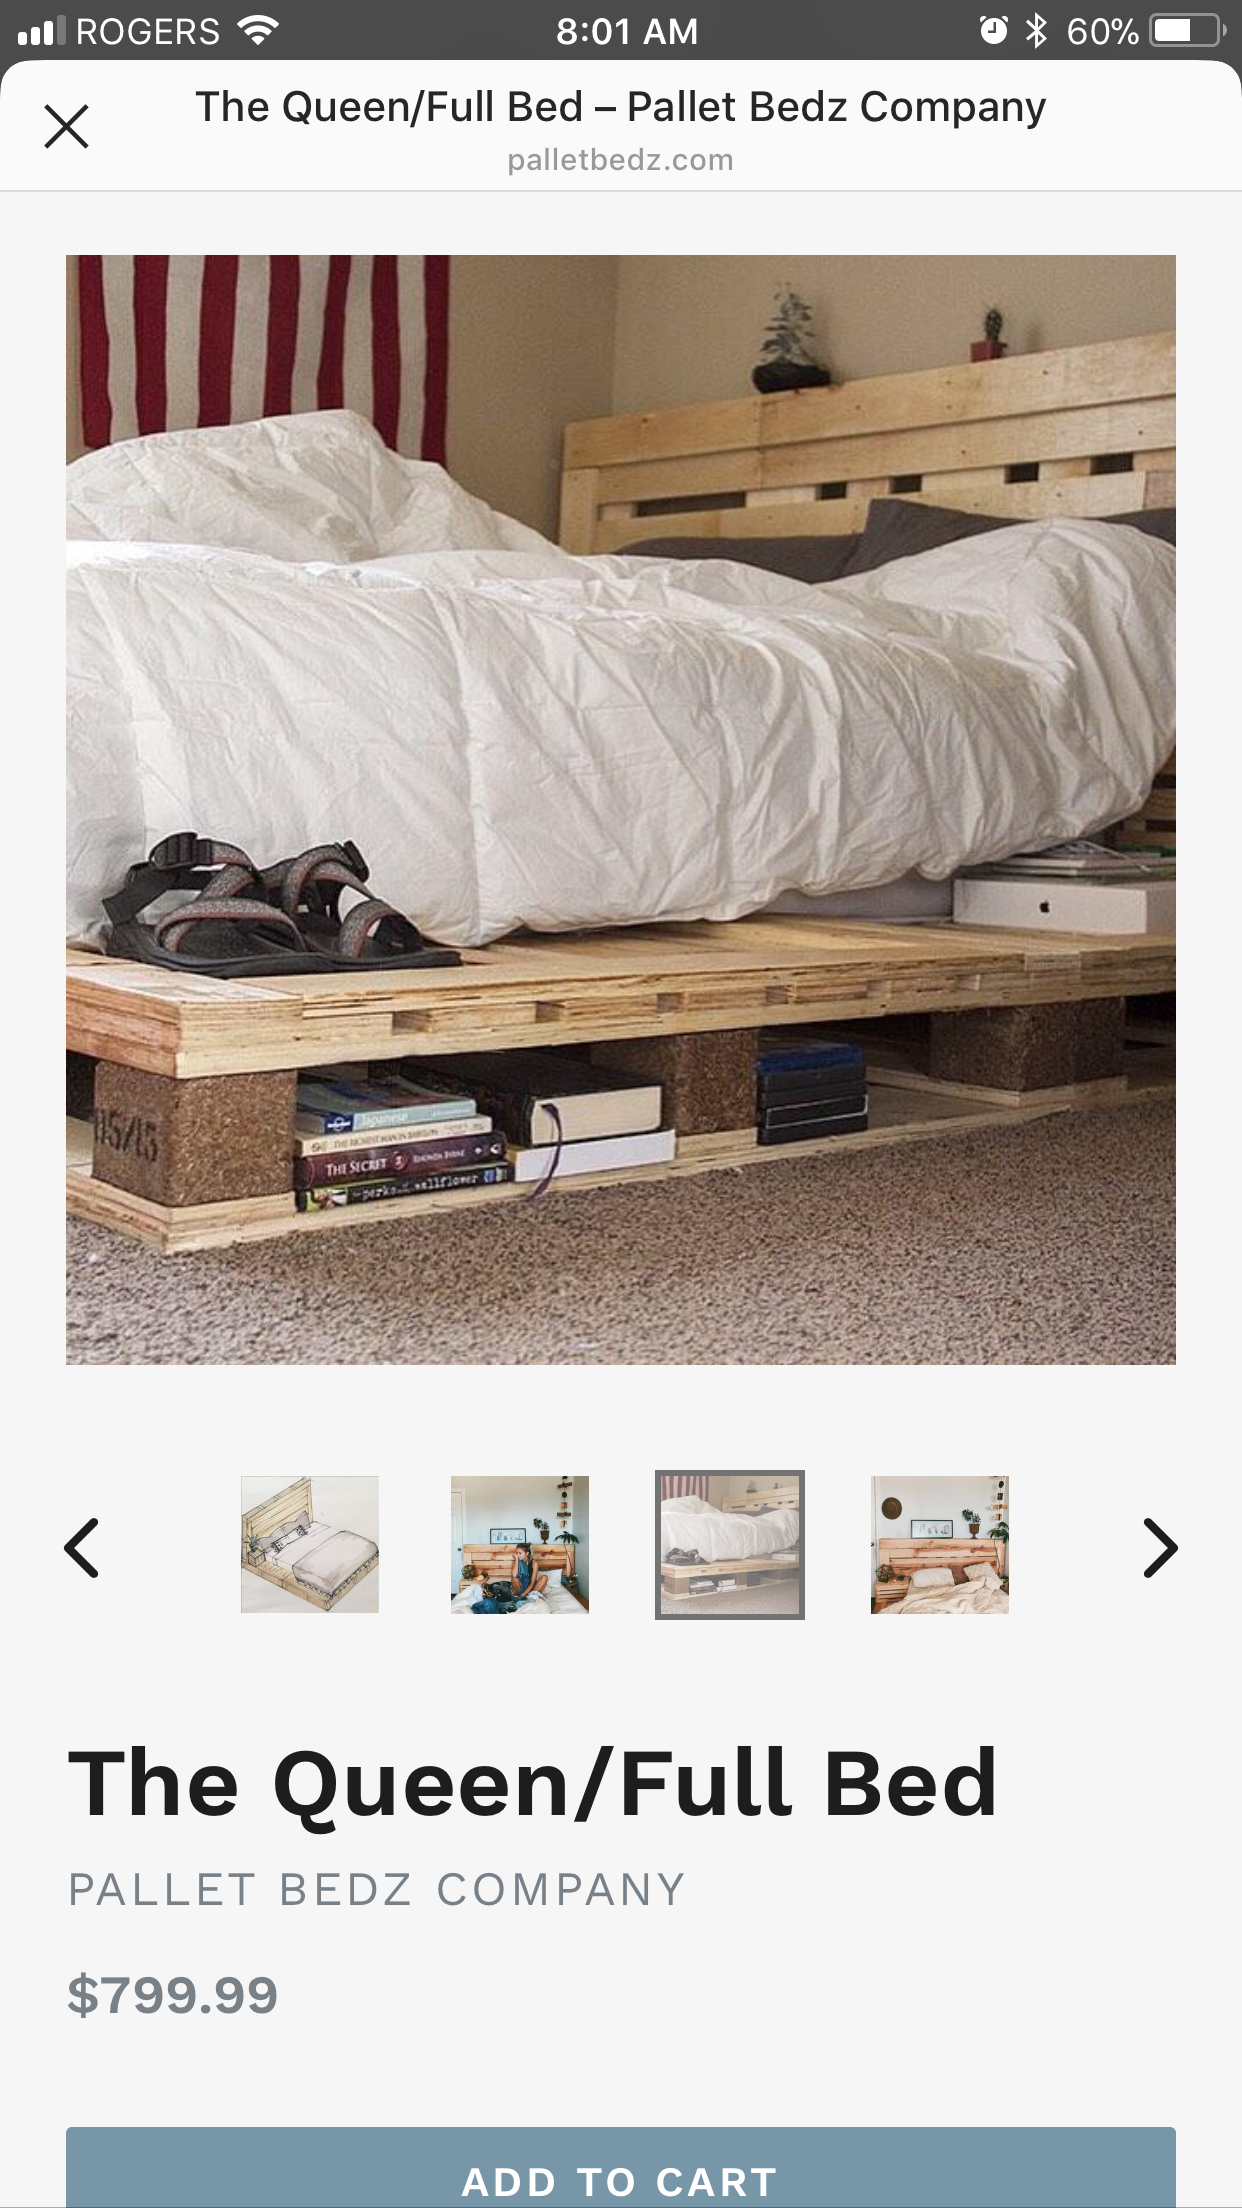 Pin by e r i n on Bedroom Pallet beds, Home decor, Full bed